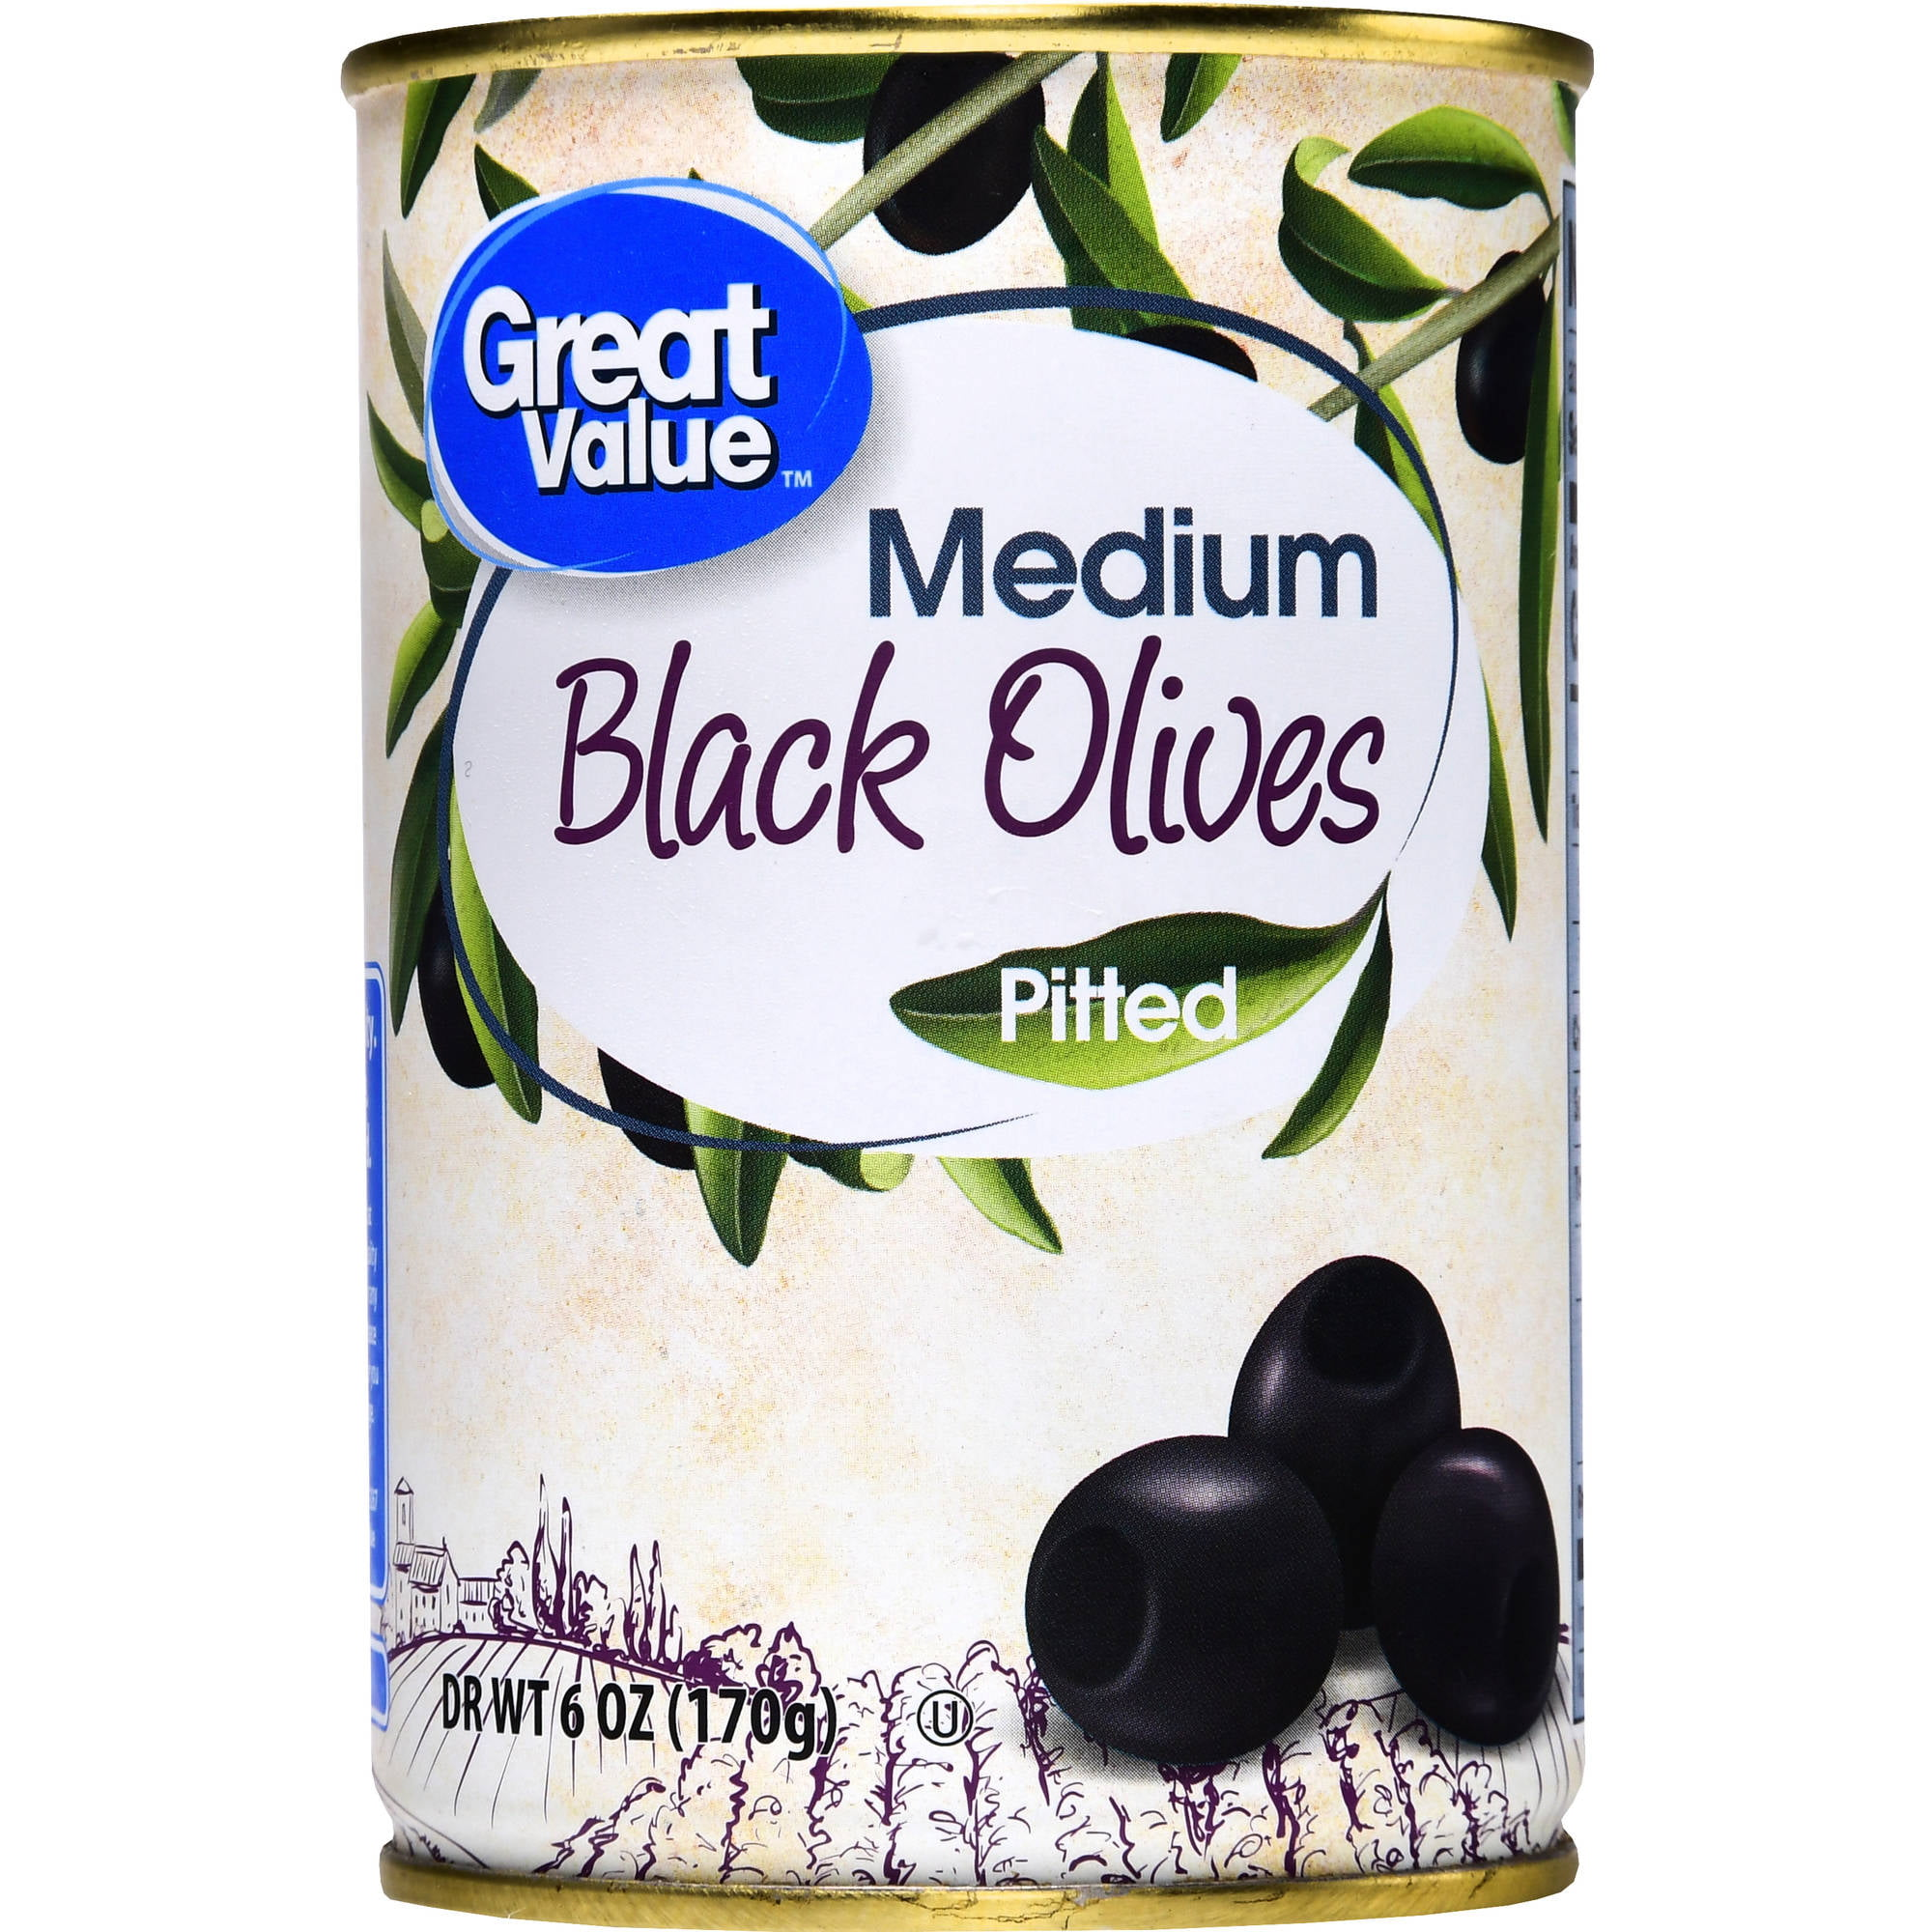 Great Value Medium Pitted Black Olives, 6 oz by Walmart Stores, Inc.